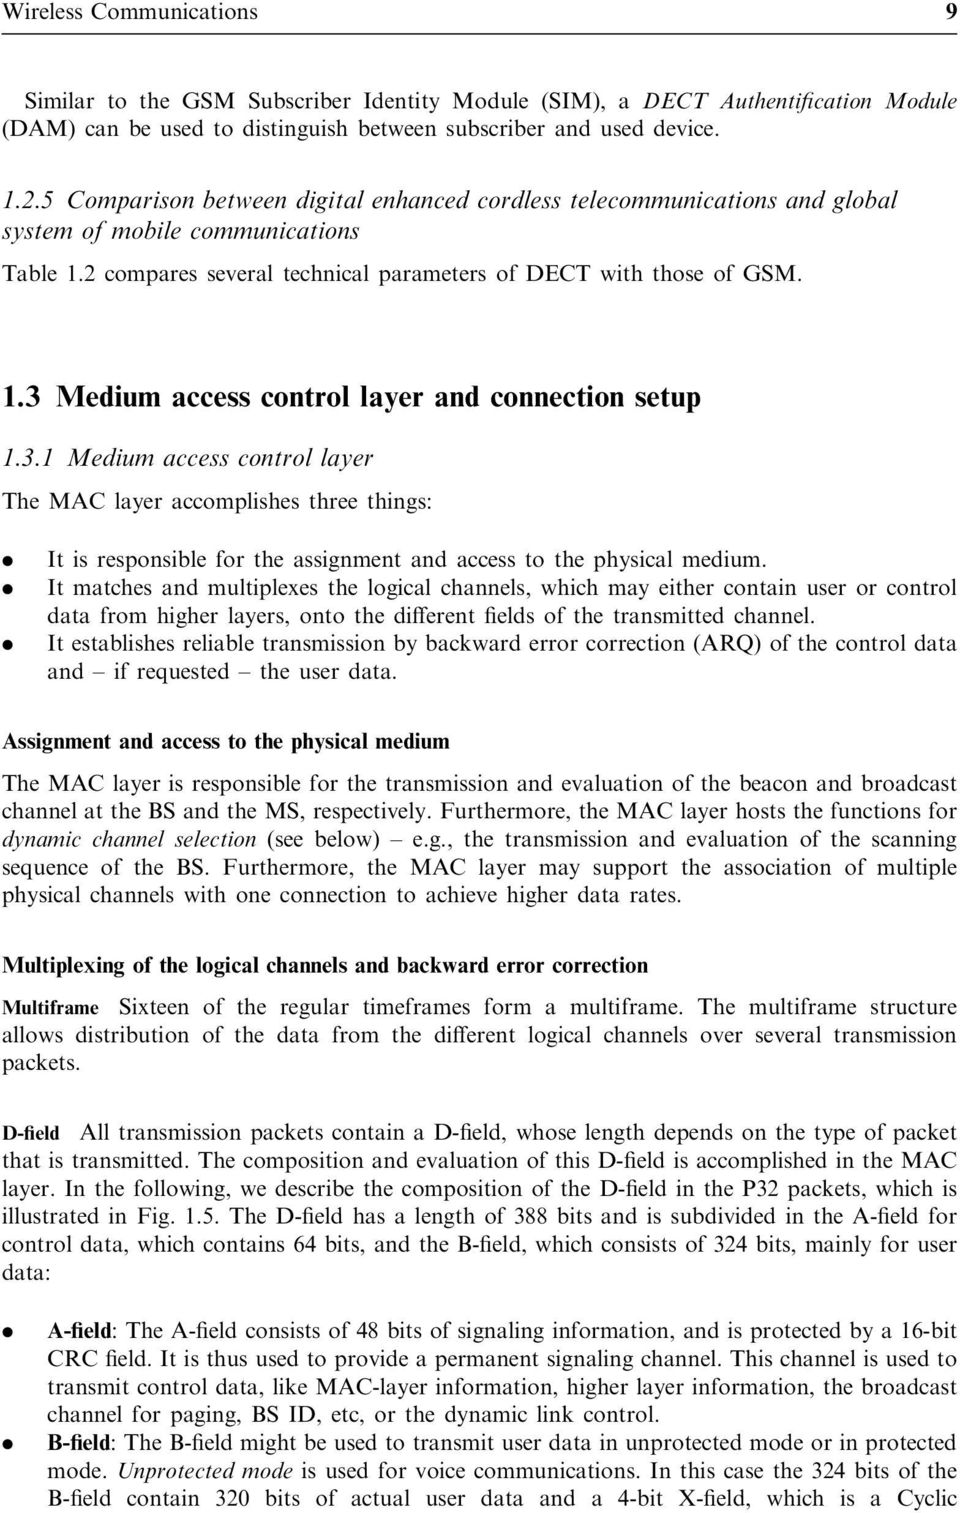 3.1 Medium access control layer The MAC layer accomplishes three things:. It is responsible for the assignment and access to the physical medium.